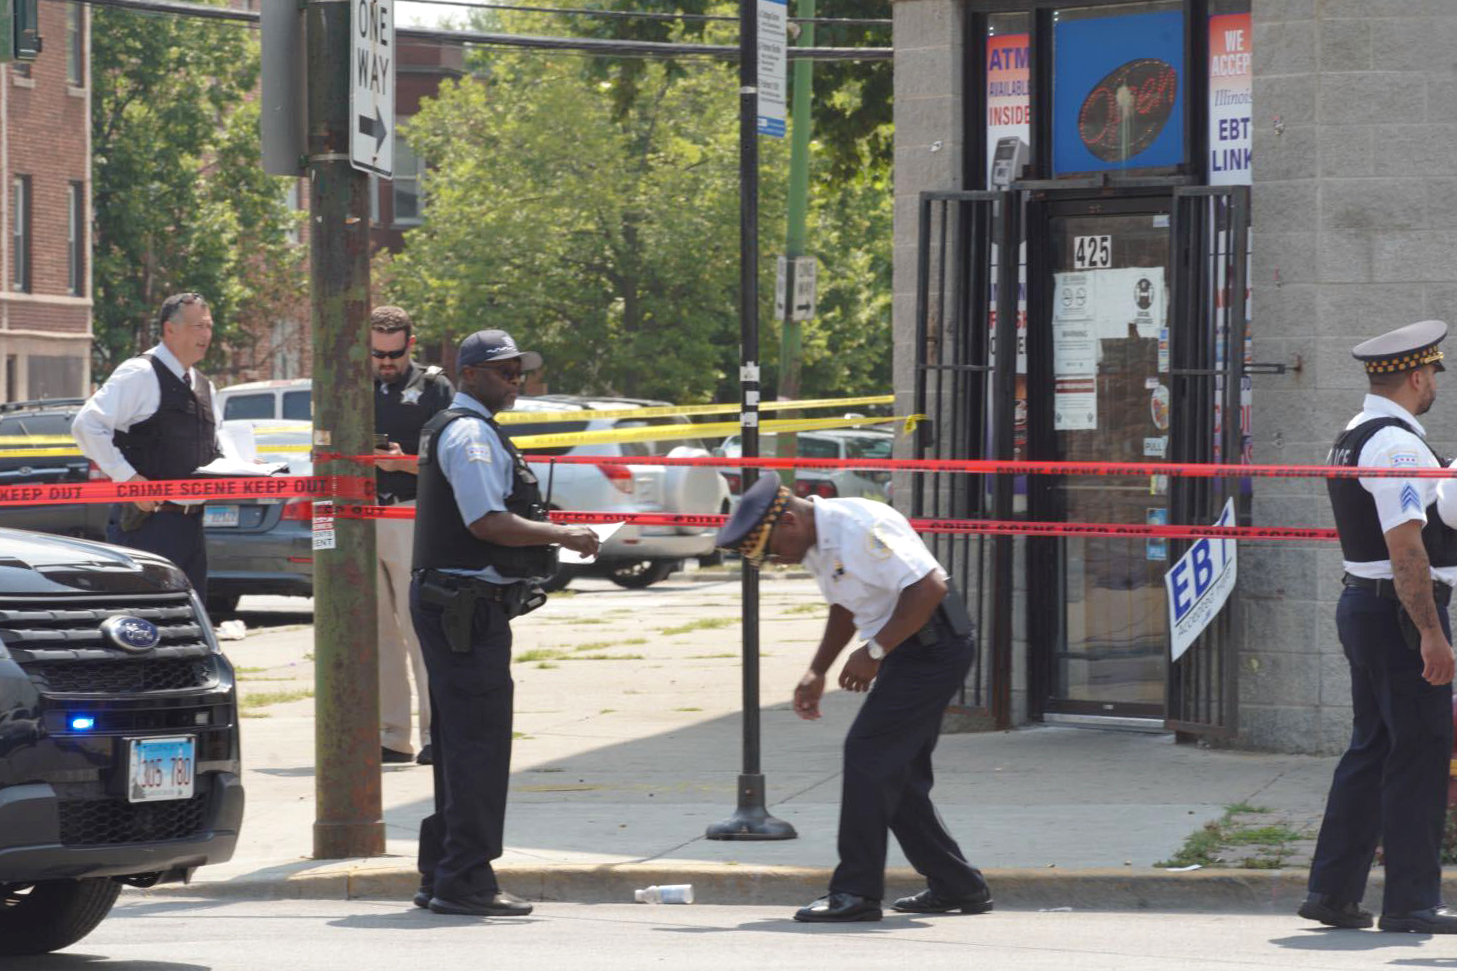 Chicago police investigate Friday afternoon in the 400 block of East 111th Street, where a 9-year-old boy and a man were both shot in Roseland.